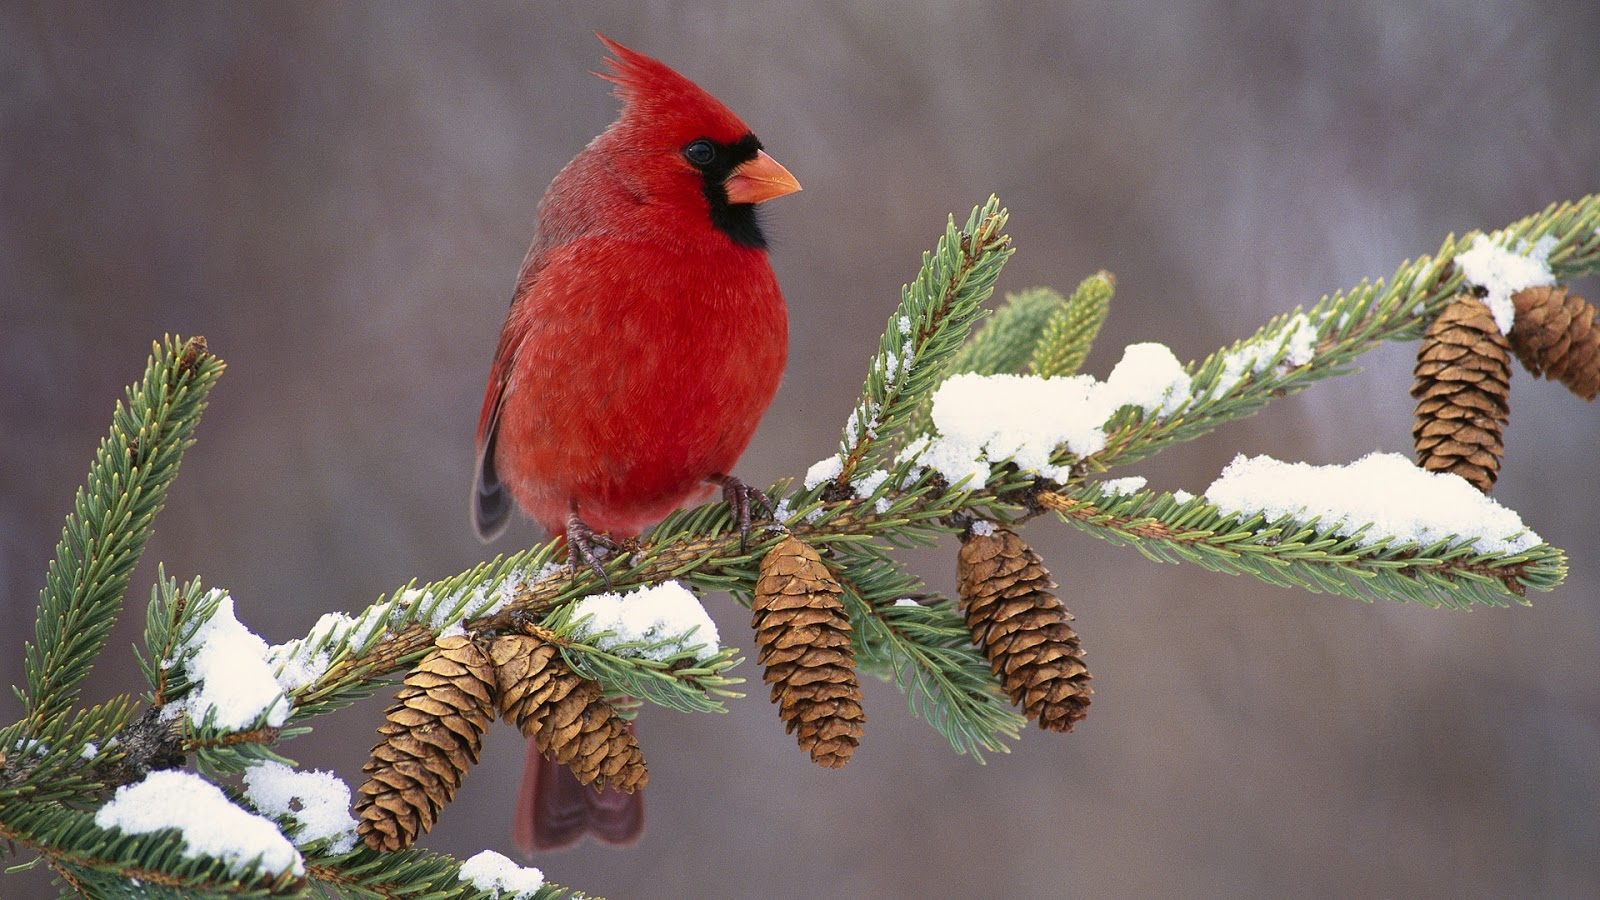 Bird Directory: Northern Cardinal of Christmas